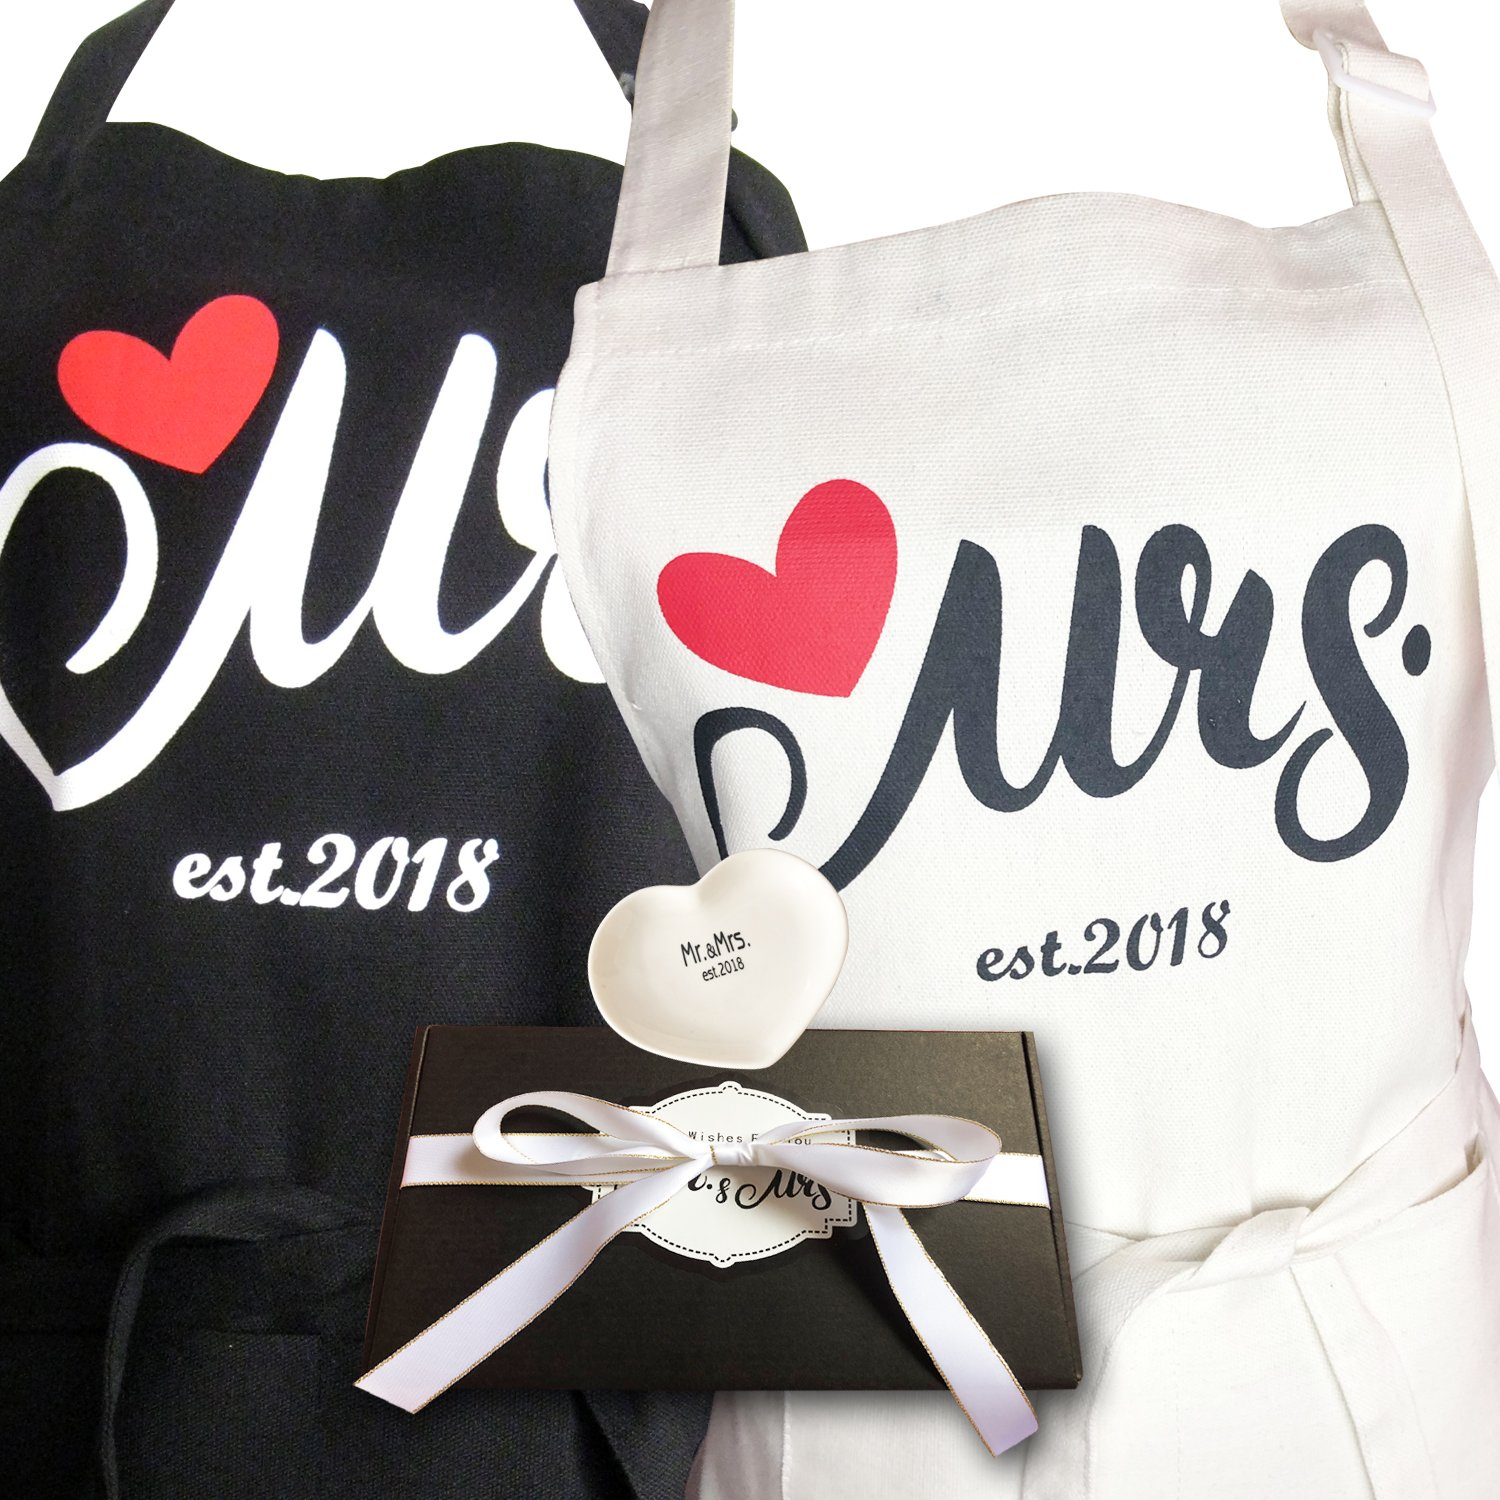 Aprons Gift Set With His and Hers Aprons,Heart-Shaped Ring Dish,Mr. and Mrs. Est. 2018 Kitchen Cooking Set With Gift Box, Funny Cooking Bibs for Wedding Marriage Newlyweds(Set of 2) (Heart) by NLooking (Image #1)